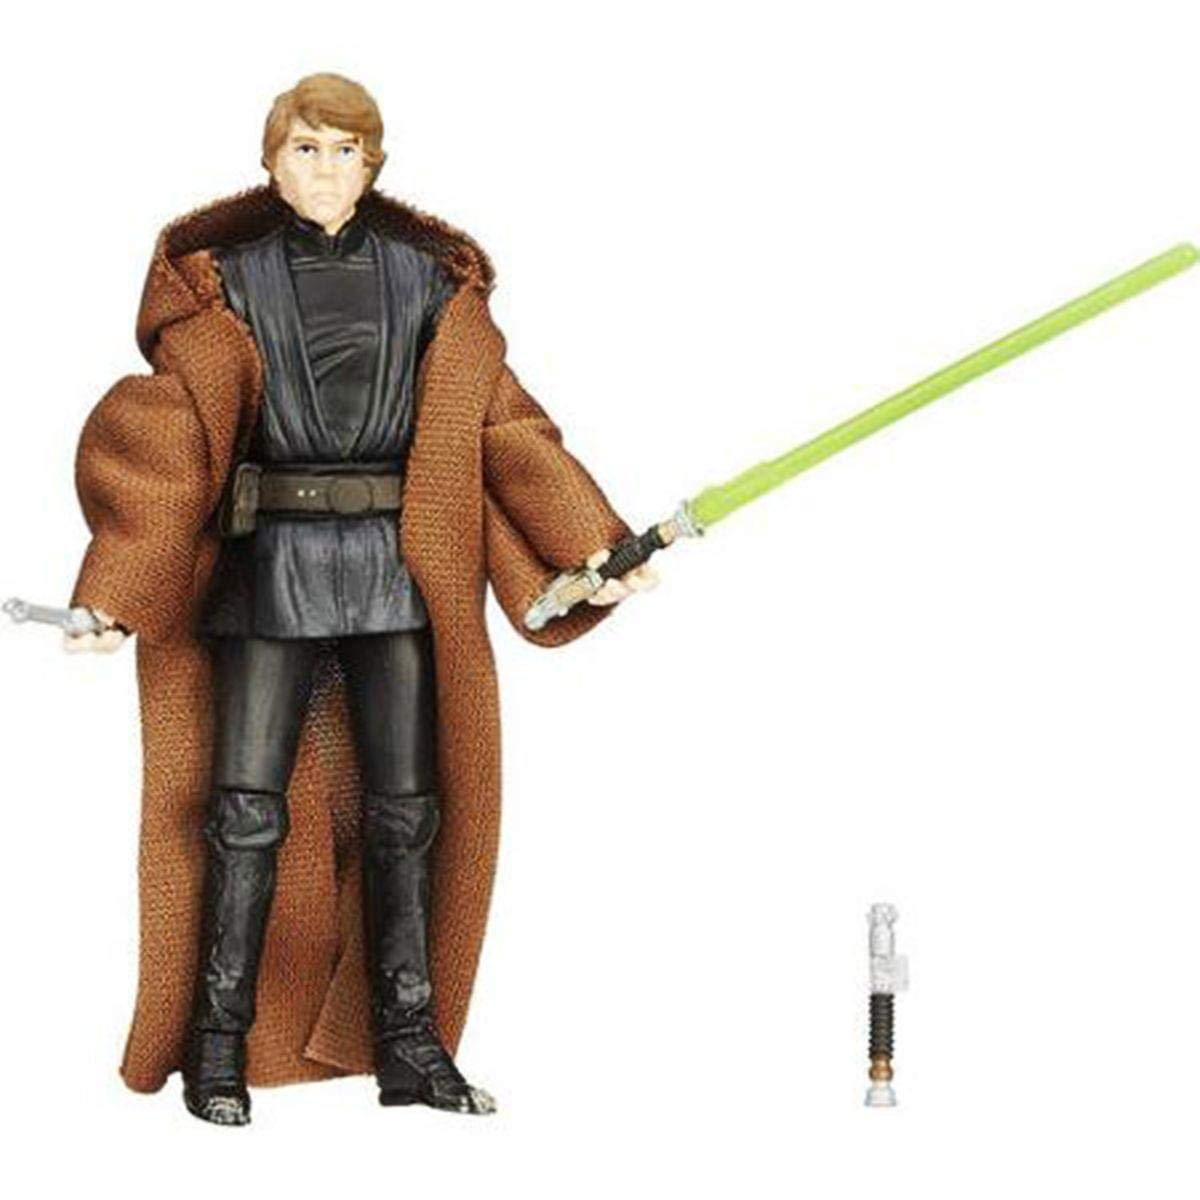 STAR WARS The Force Despierta Walmart Exclusiva 3.75